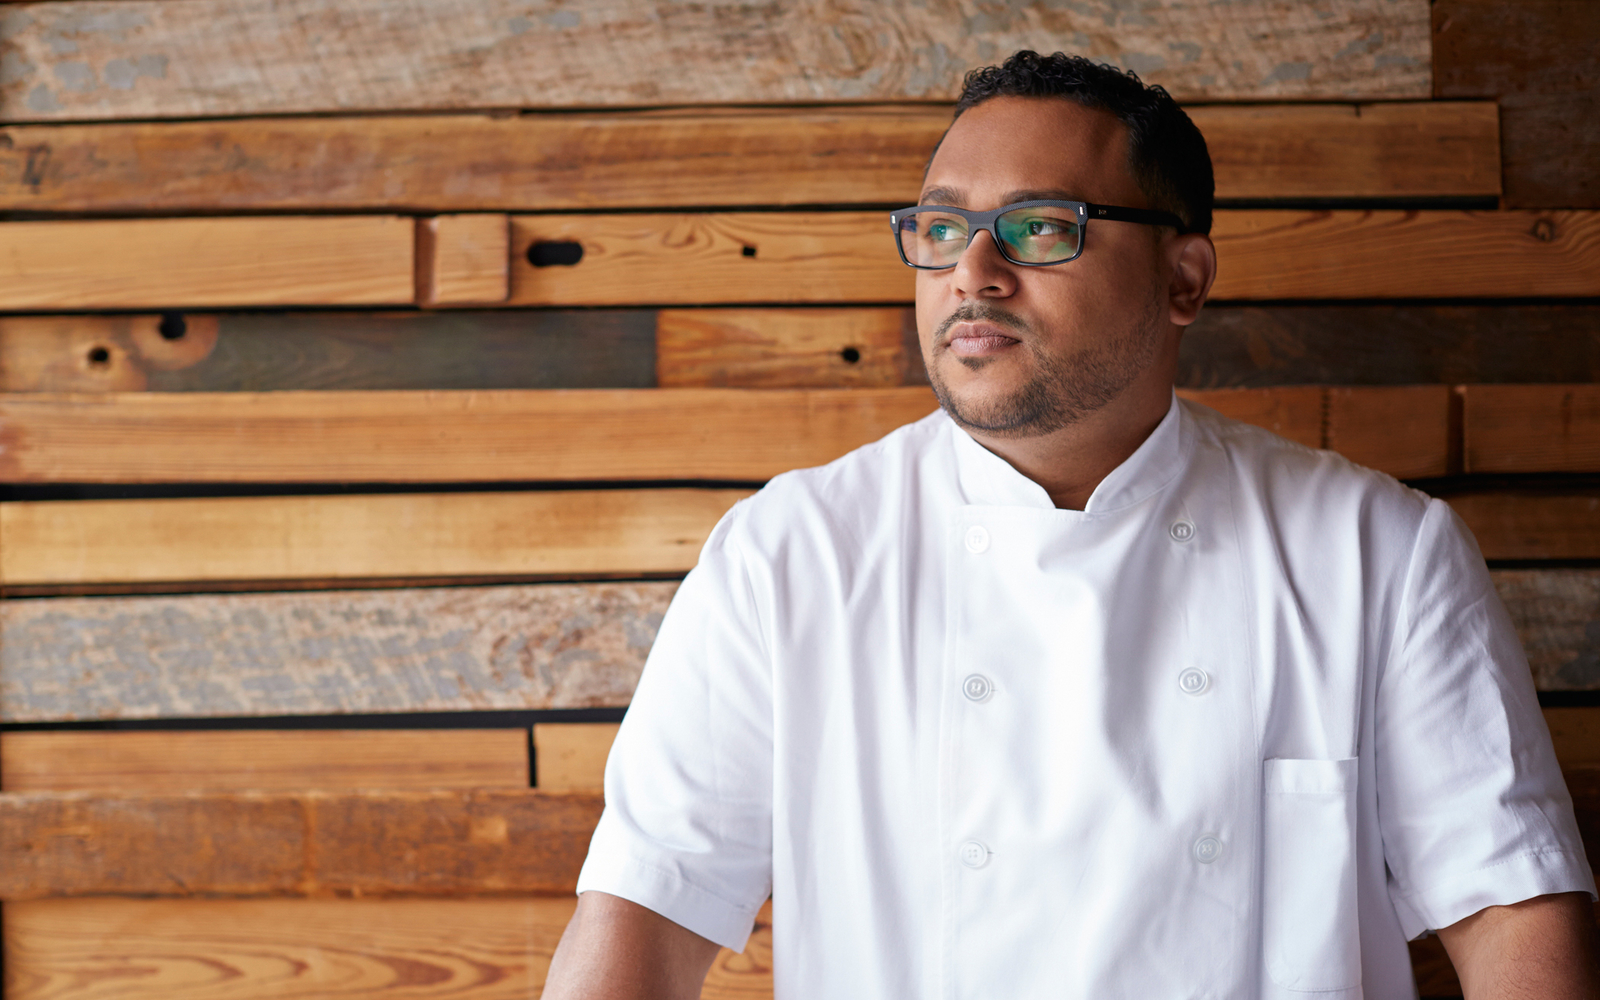 Chef's Tour: Kevin Sbraga's Philadelphia in Five Meals